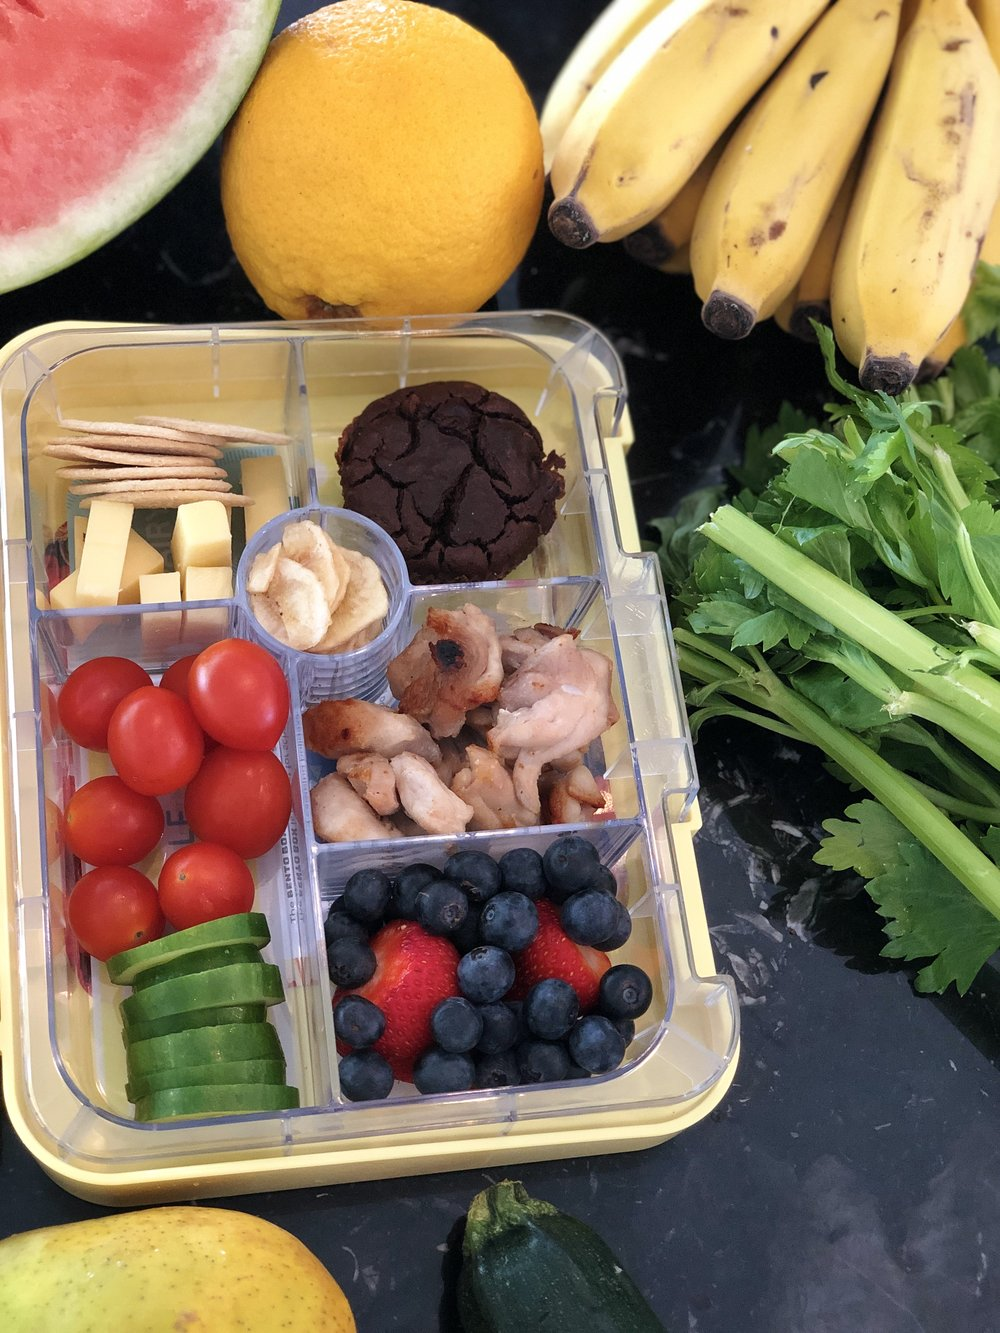 MONDAY - Dairy: Cheese and crackersVege: Cherry Tomatoes and CucumberFruit: BerriesProtein: Grilled Chicken BreastGrain: Carrot and Cinnamon Muffins from the Wholesome ChildTreat: Preservative free Banana chips